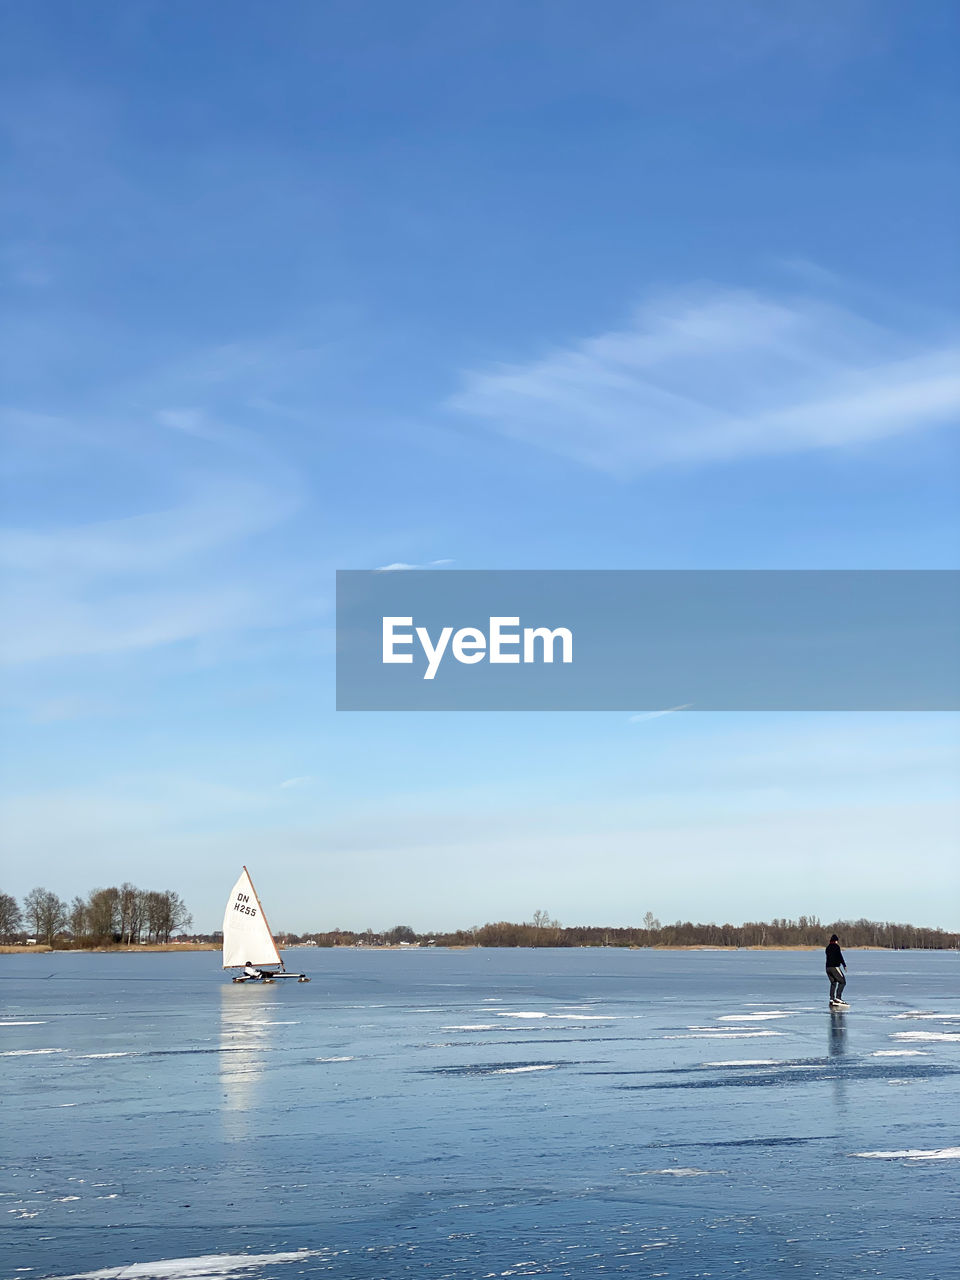 VIEW OF FROZEN LAKE AGAINST BLUE SKY